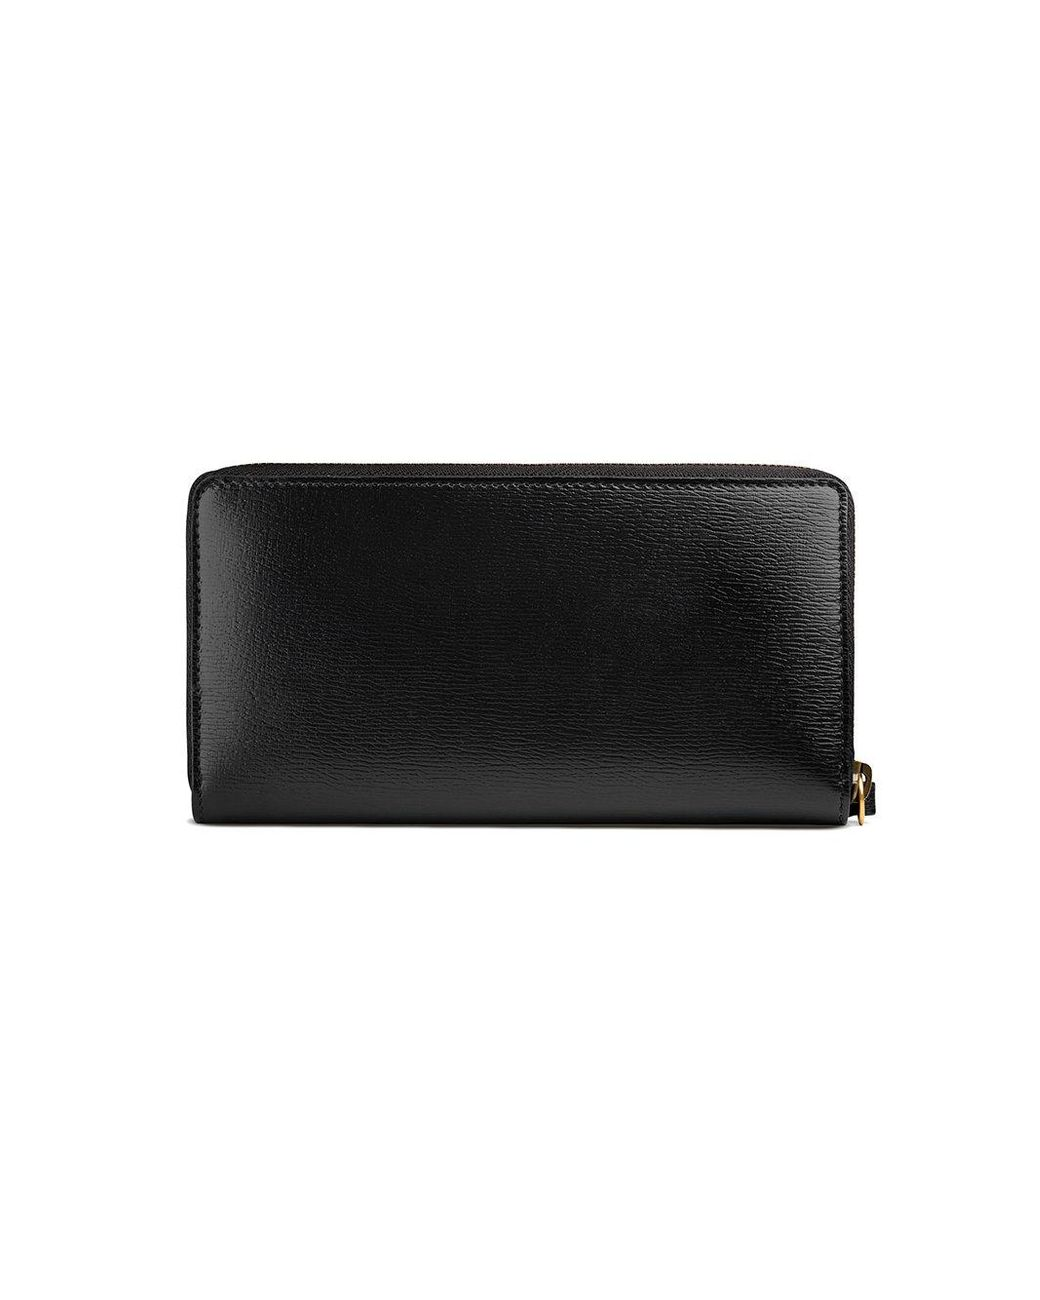 f59b30b620c6 Gucci Kingsnake Print Leather Zip Around Wallet in Black for Men - Lyst